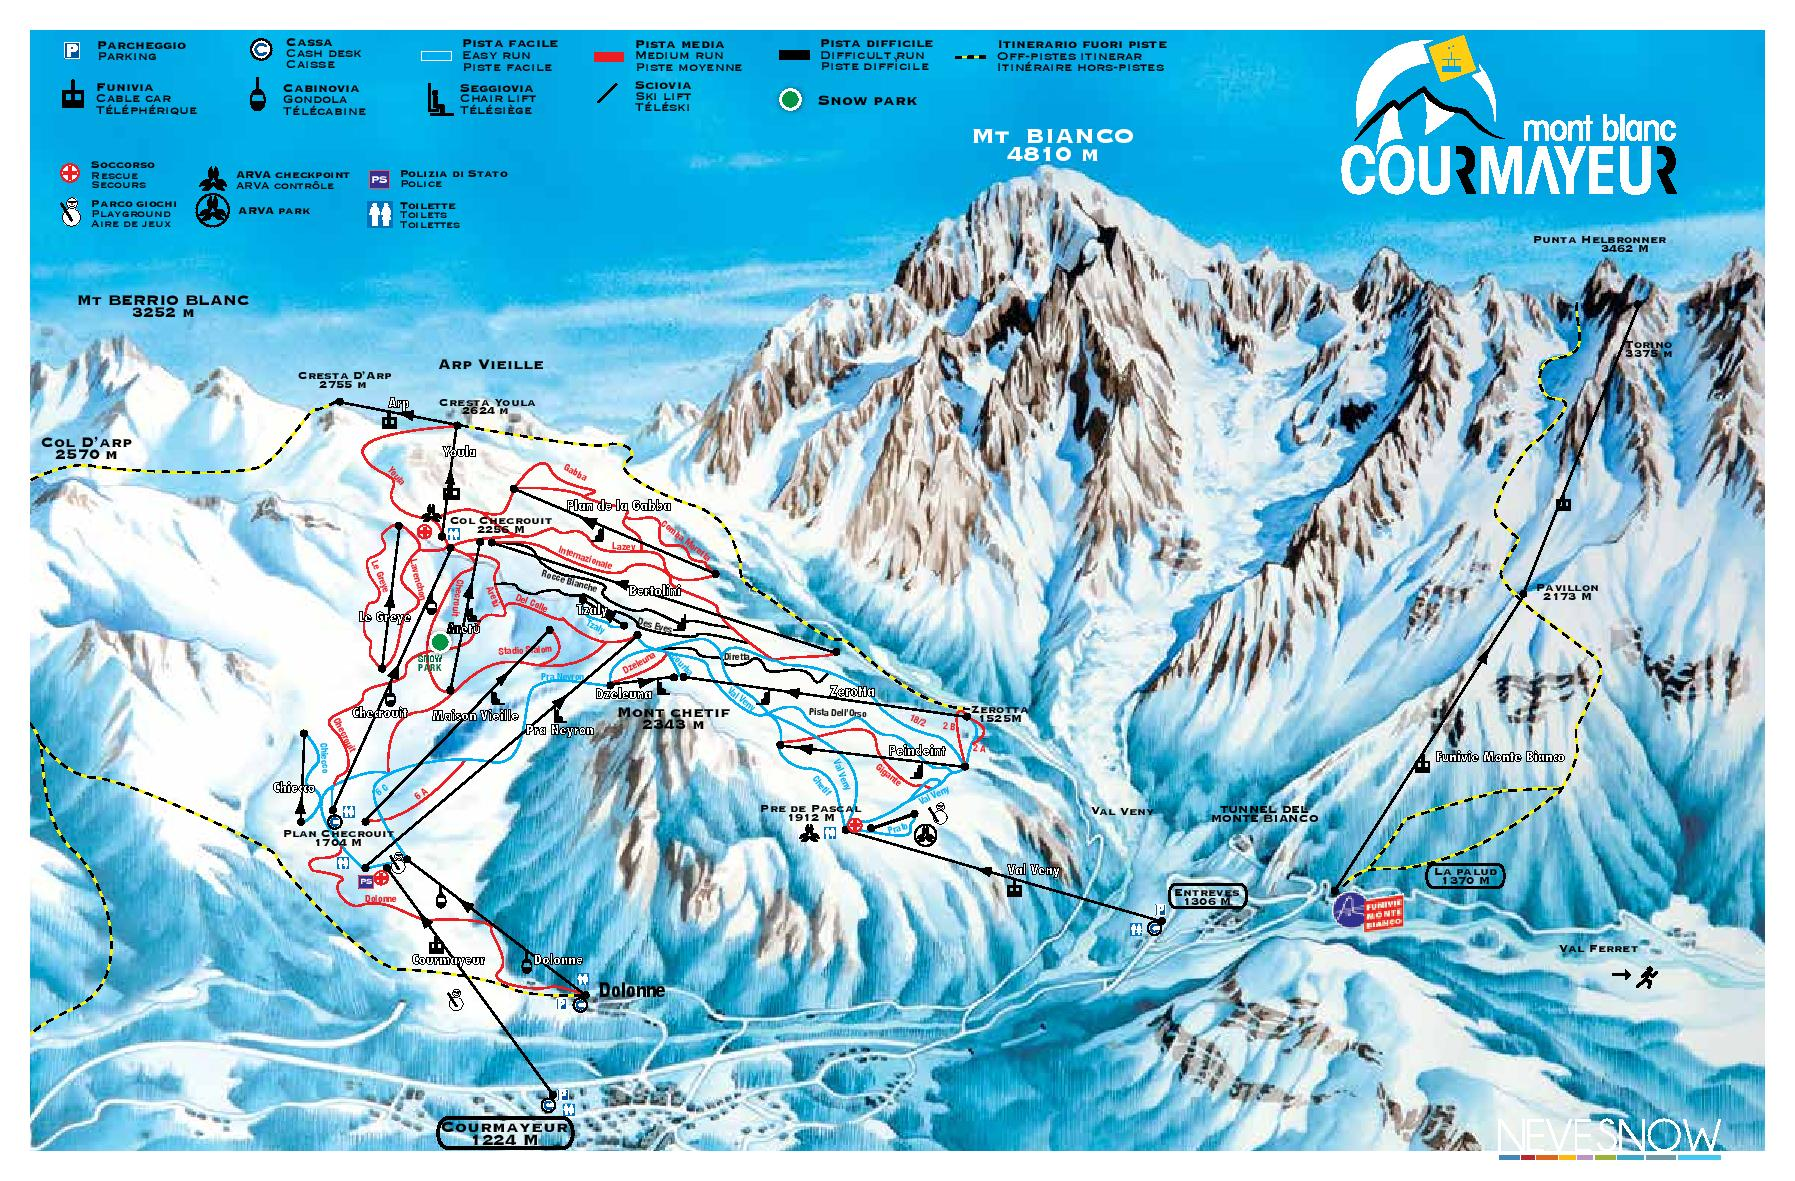 Pistes Map of Courmayeur